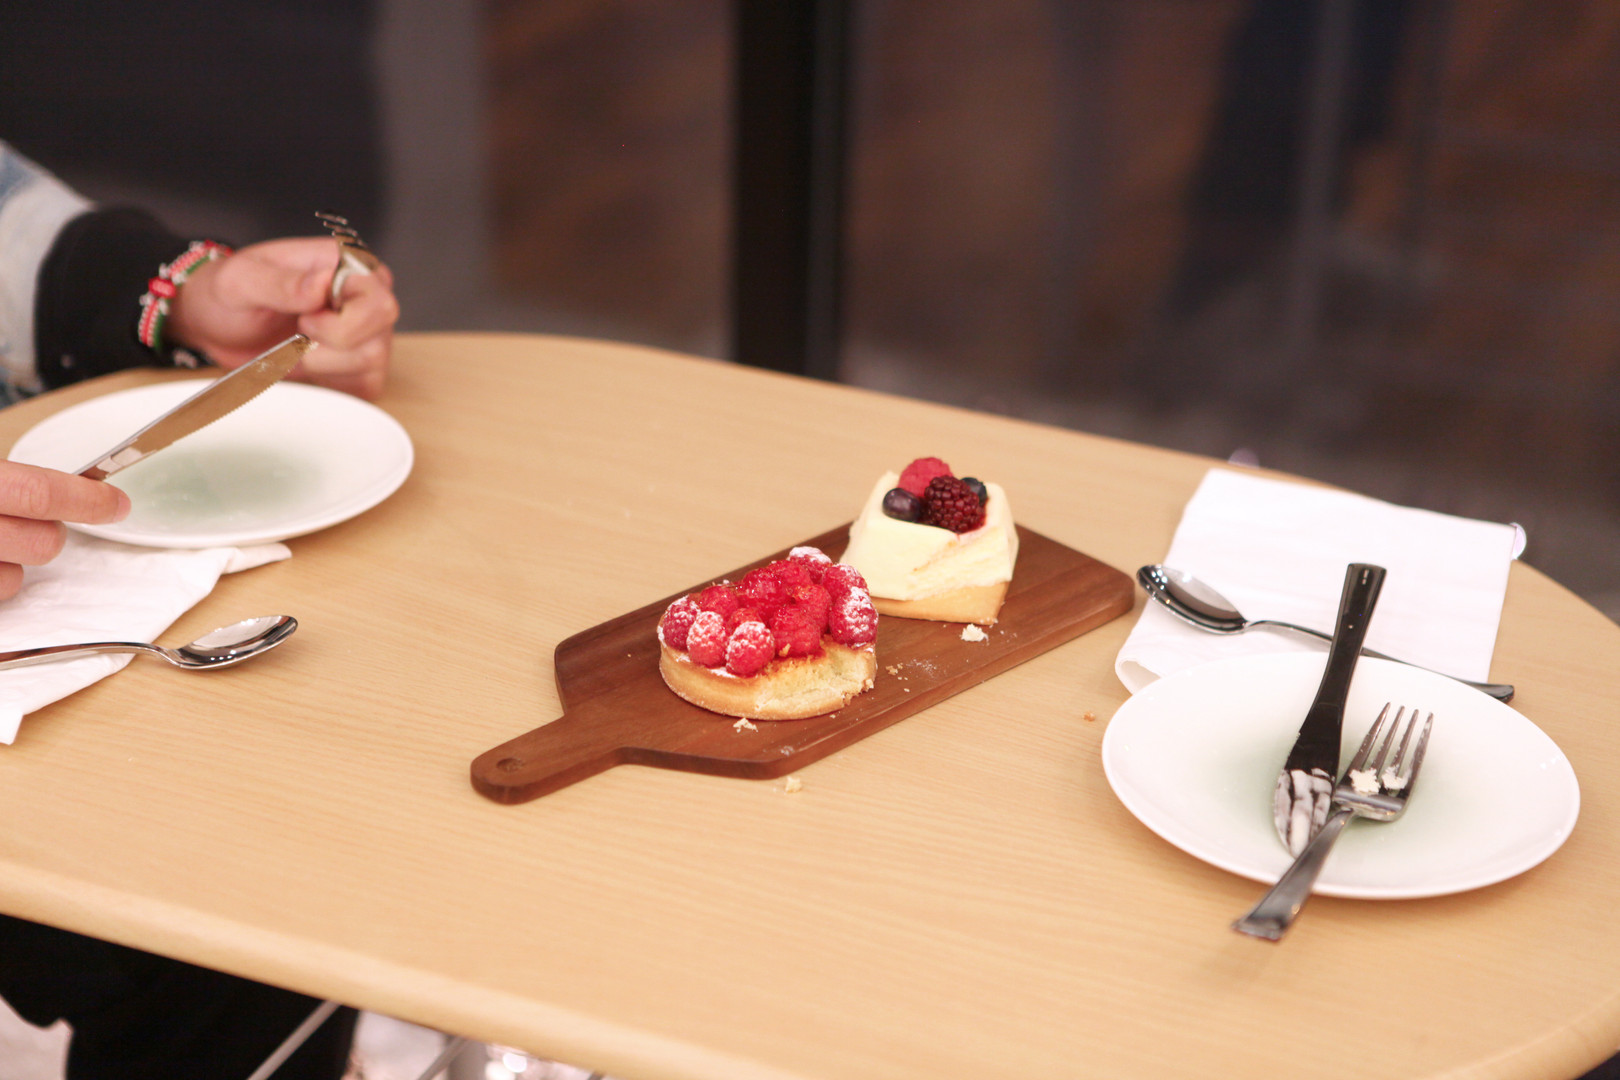 Sugar is in everything! What is it like to eat meals only consisting of fruit and custard tartes?